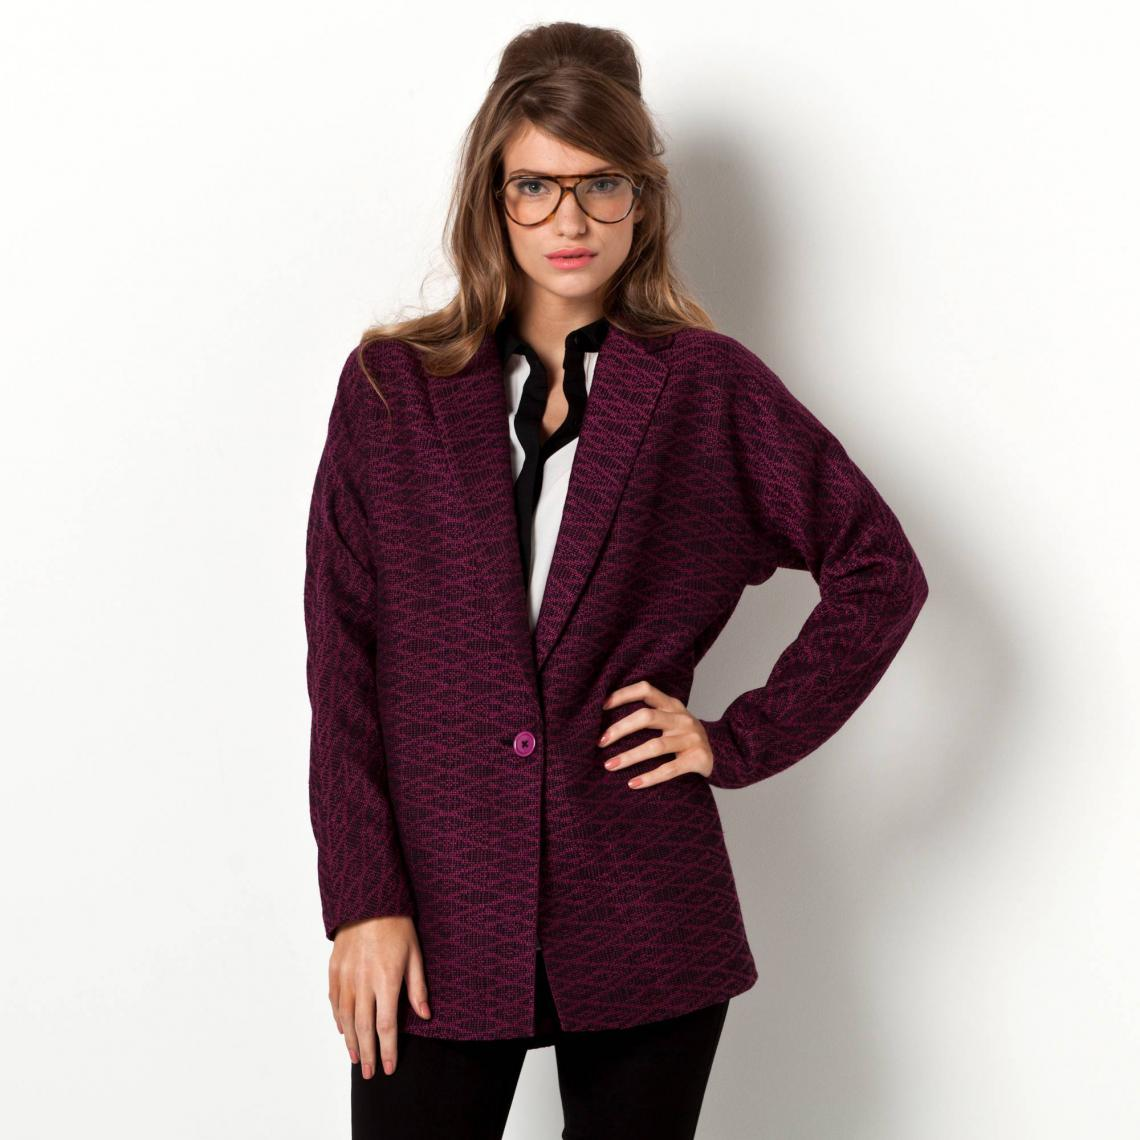 Veste longue jacquard COLLECTION - 3 SUISSES - Modalova